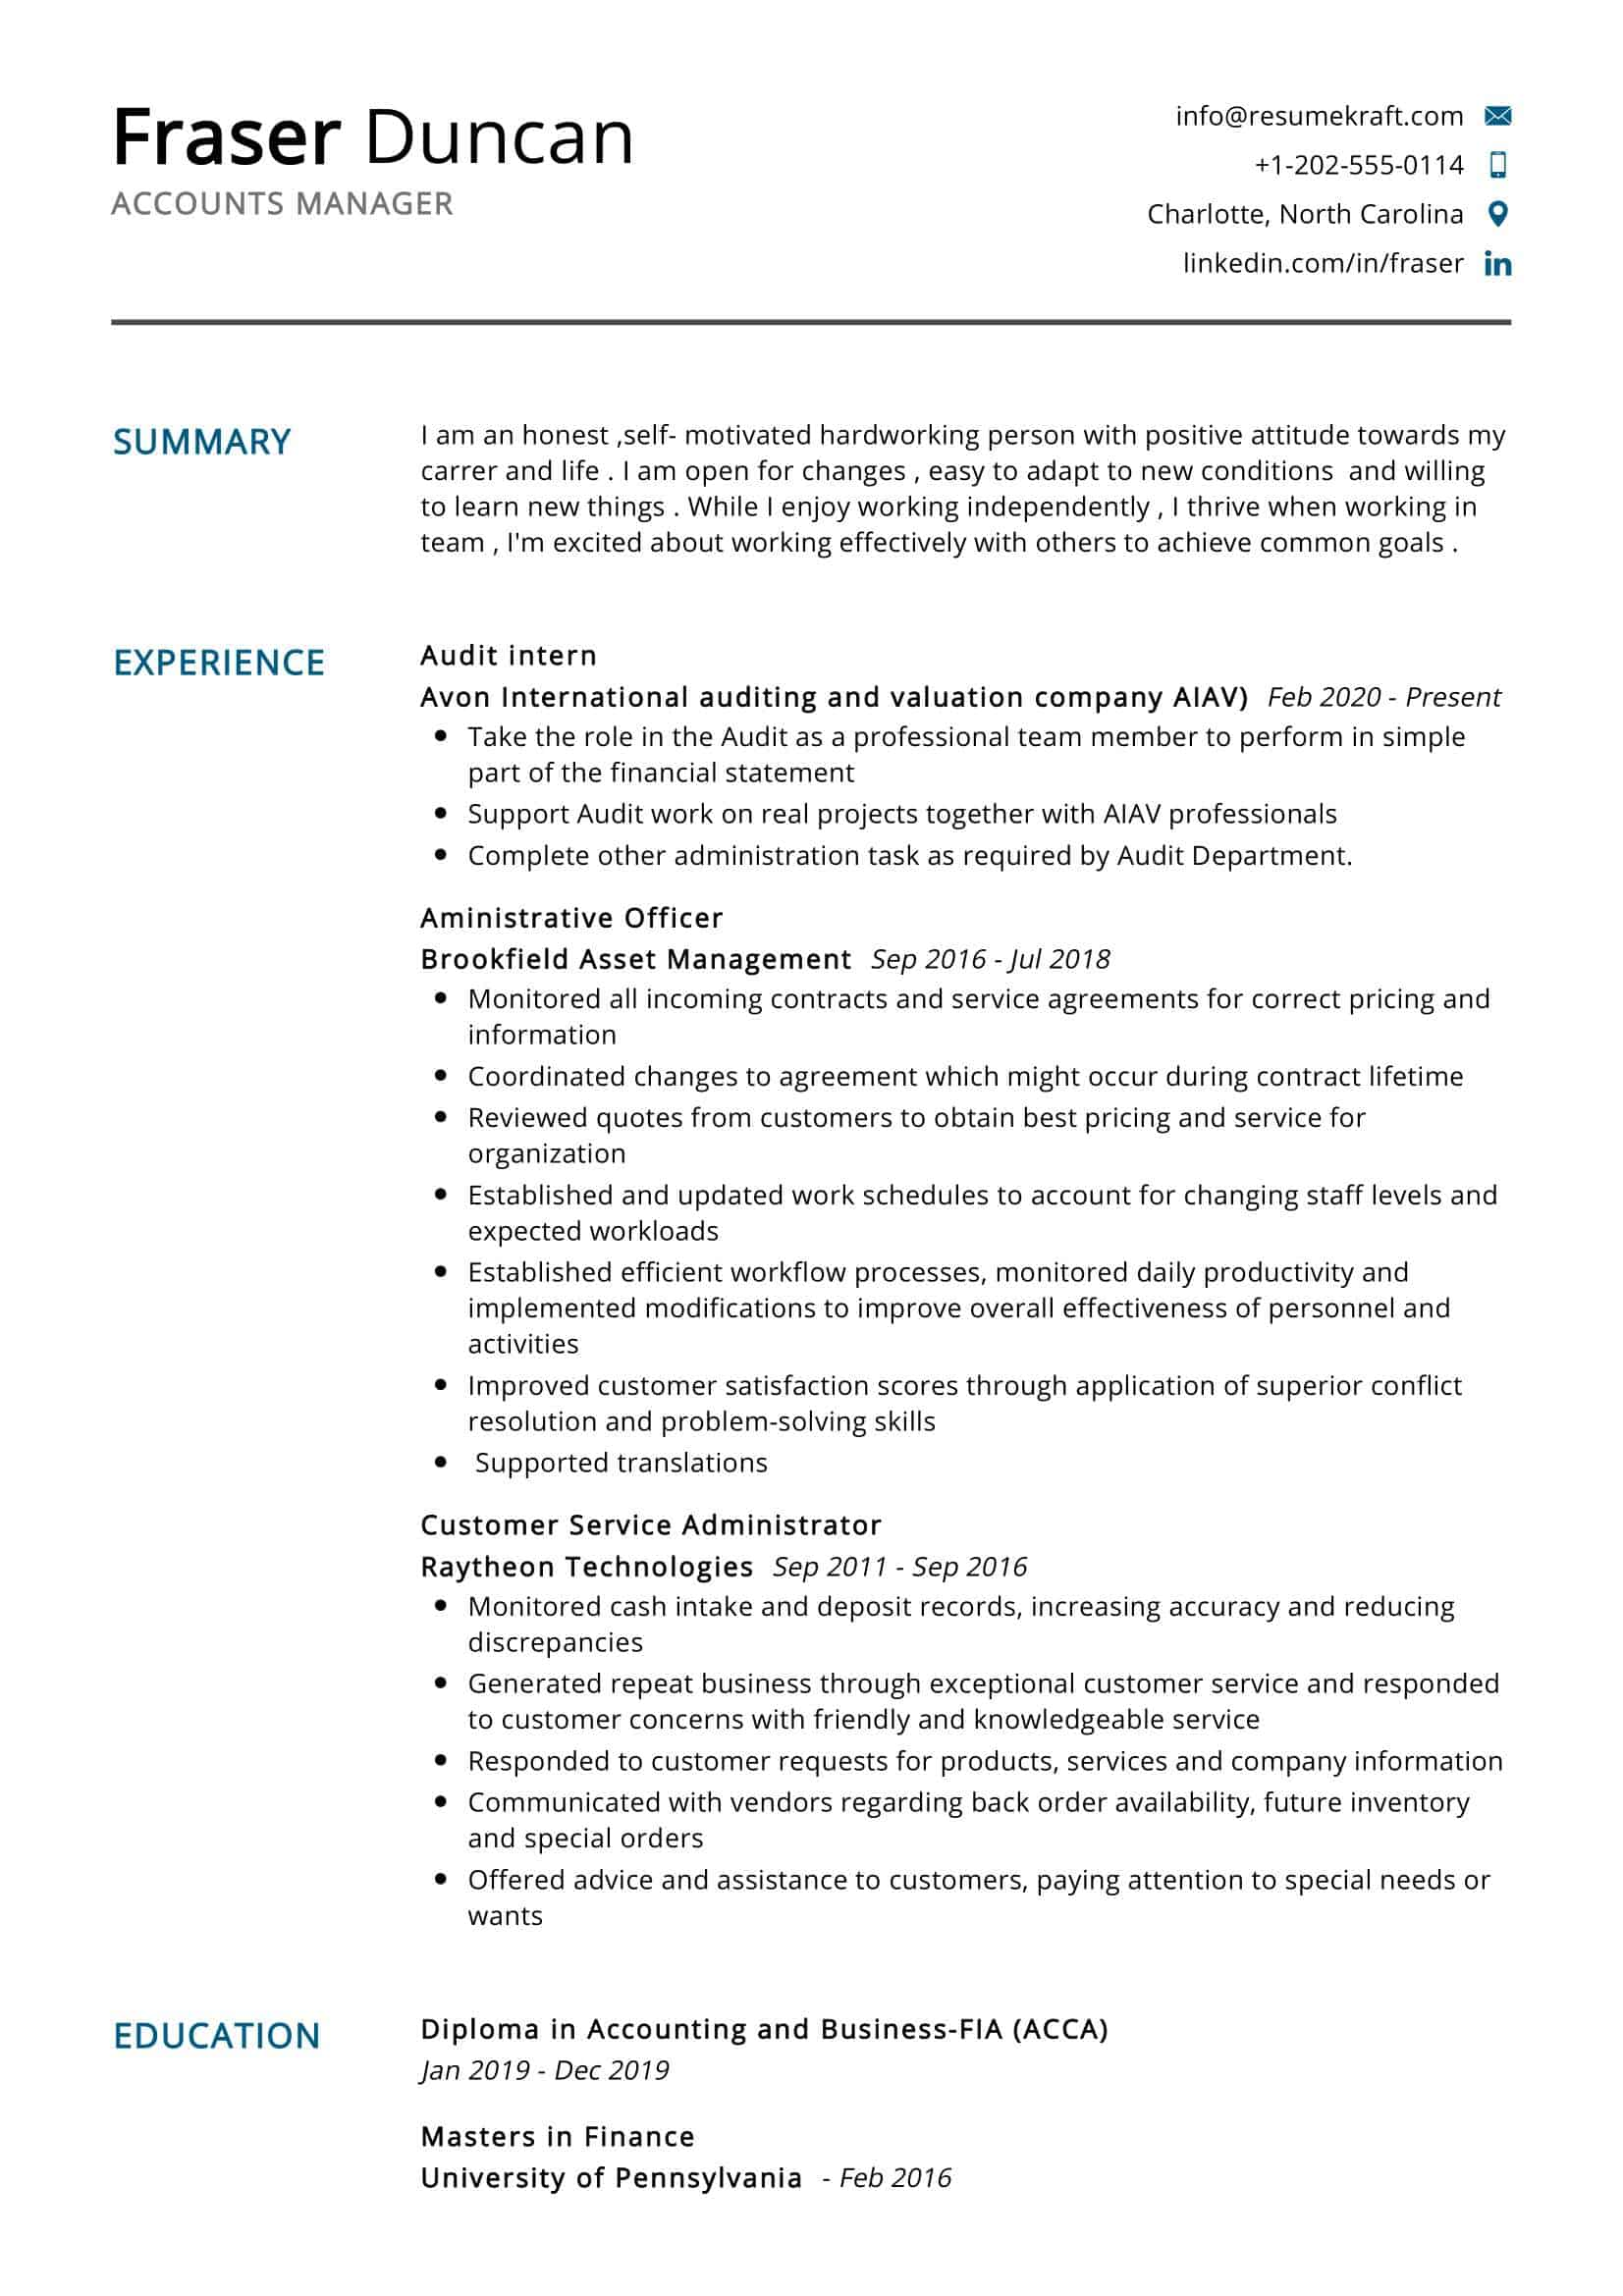 Accounts Manager Resume Sample